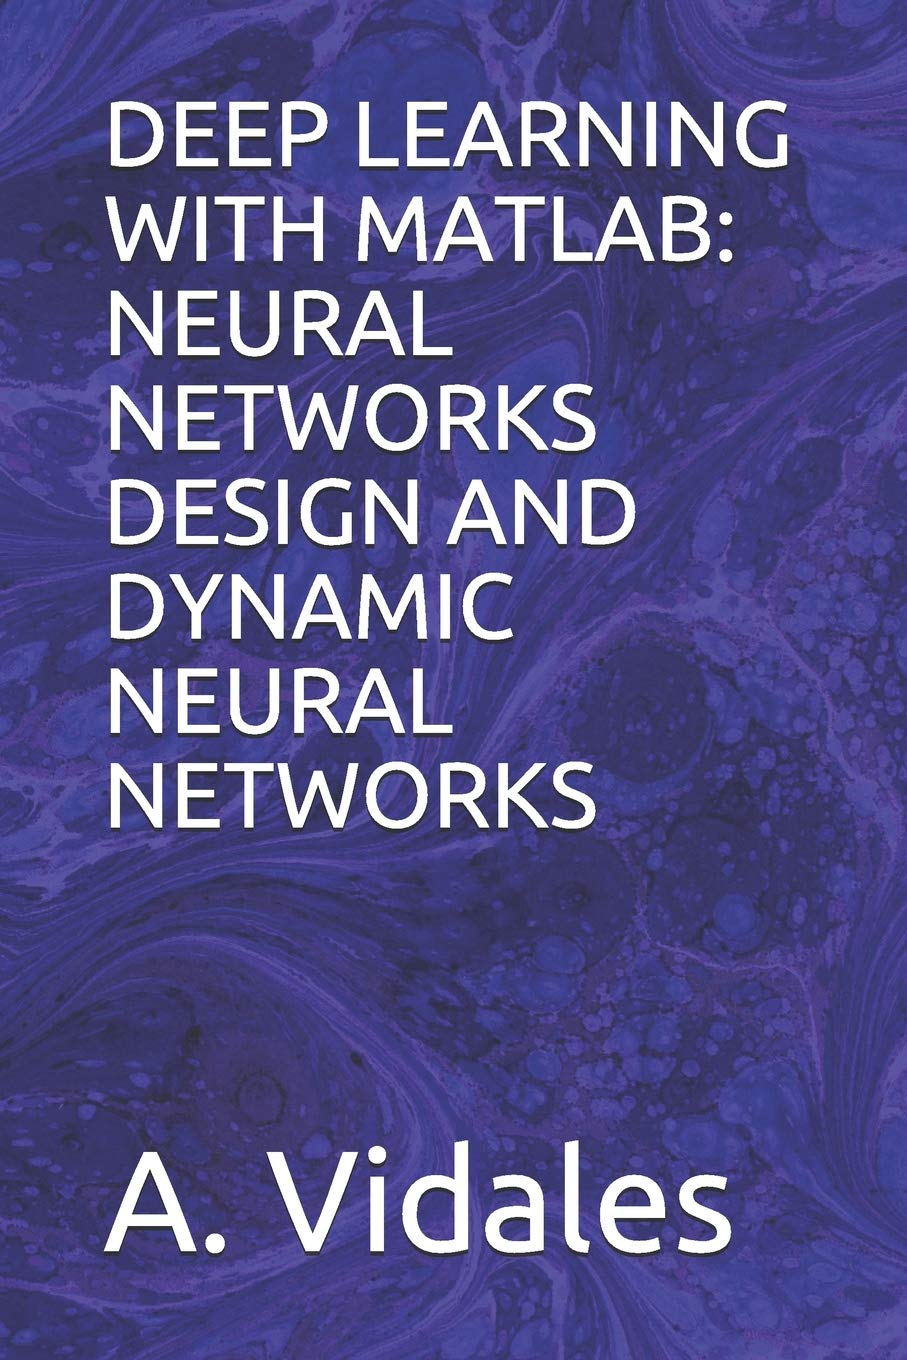 DEEP LEARNING WITH MATLAB: NEURAL NETWORKS DESIGN AND